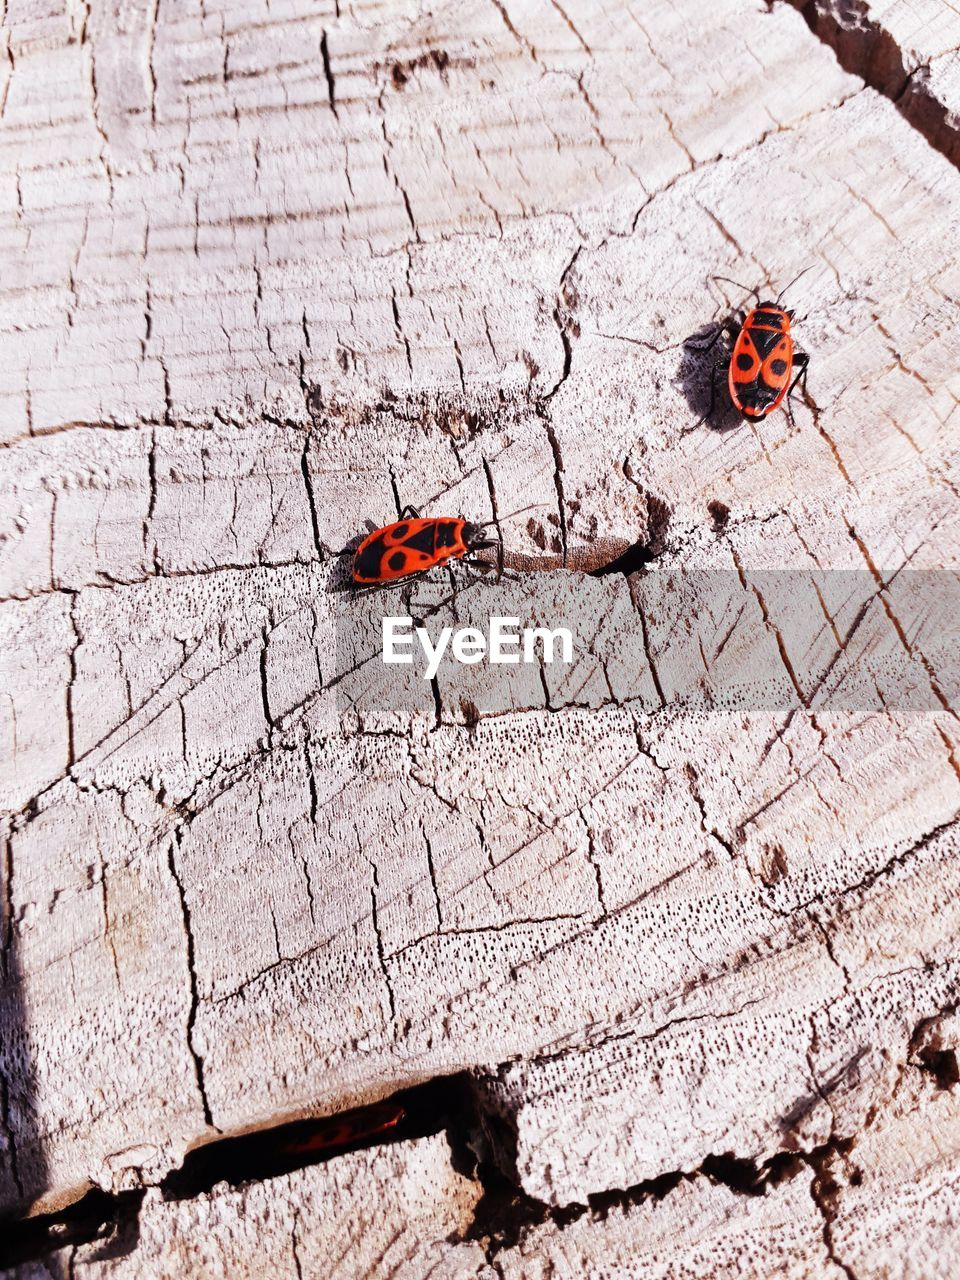 insect, invertebrate, animal themes, animal, animals in the wild, animal wildlife, one animal, no people, day, high angle view, ladybug, beetle, red, outdoors, animal wing, close-up, nature, sunlight, butterfly - insect